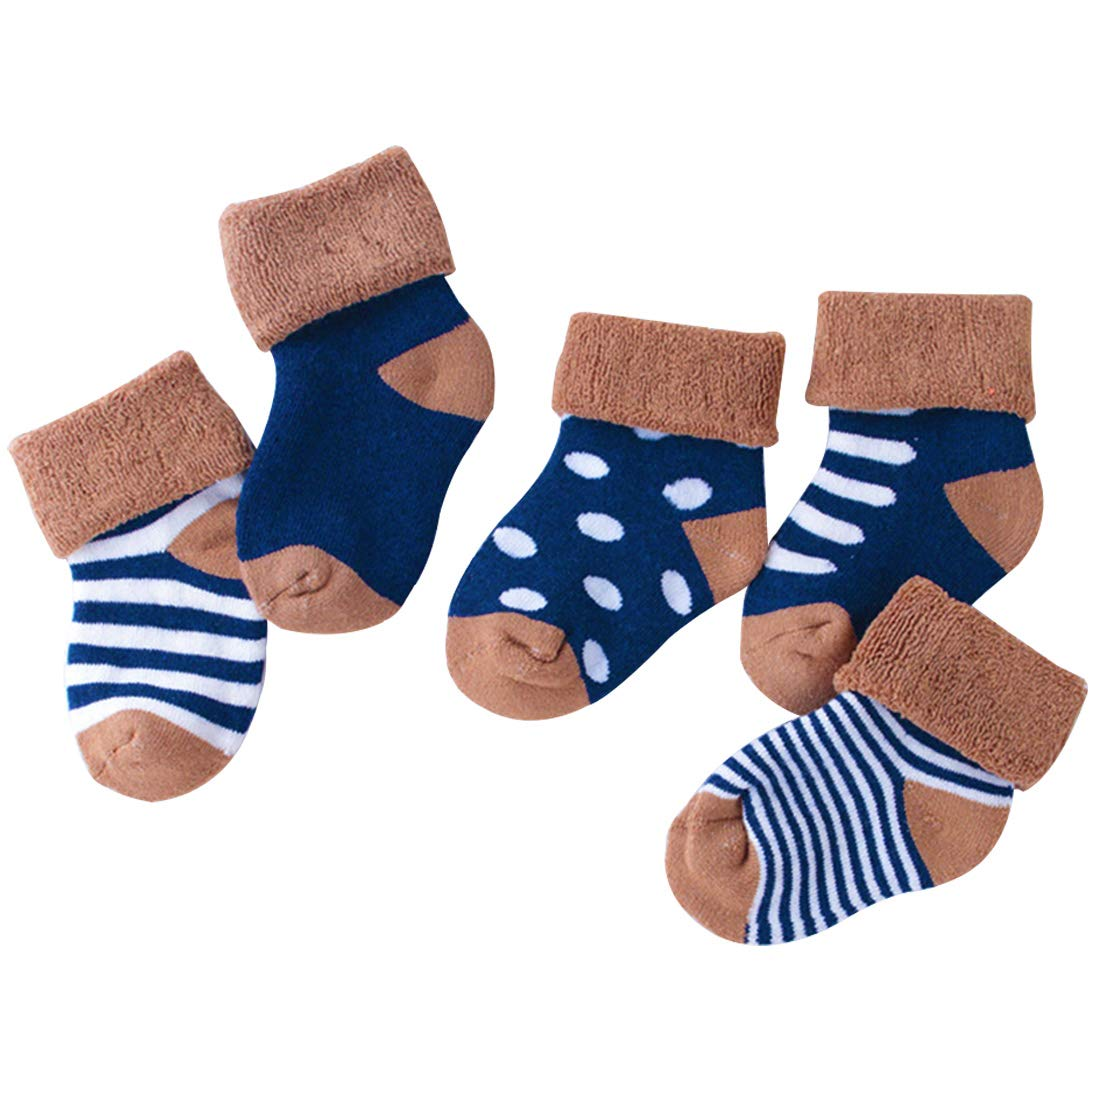 LORYLOLY Socks 5 Pairs for Child 0-1 1-3 Years Thermal Winter Socks for Children Newborn Baby Unisex Multicolored Cotton Natrual Warm and Comfortable